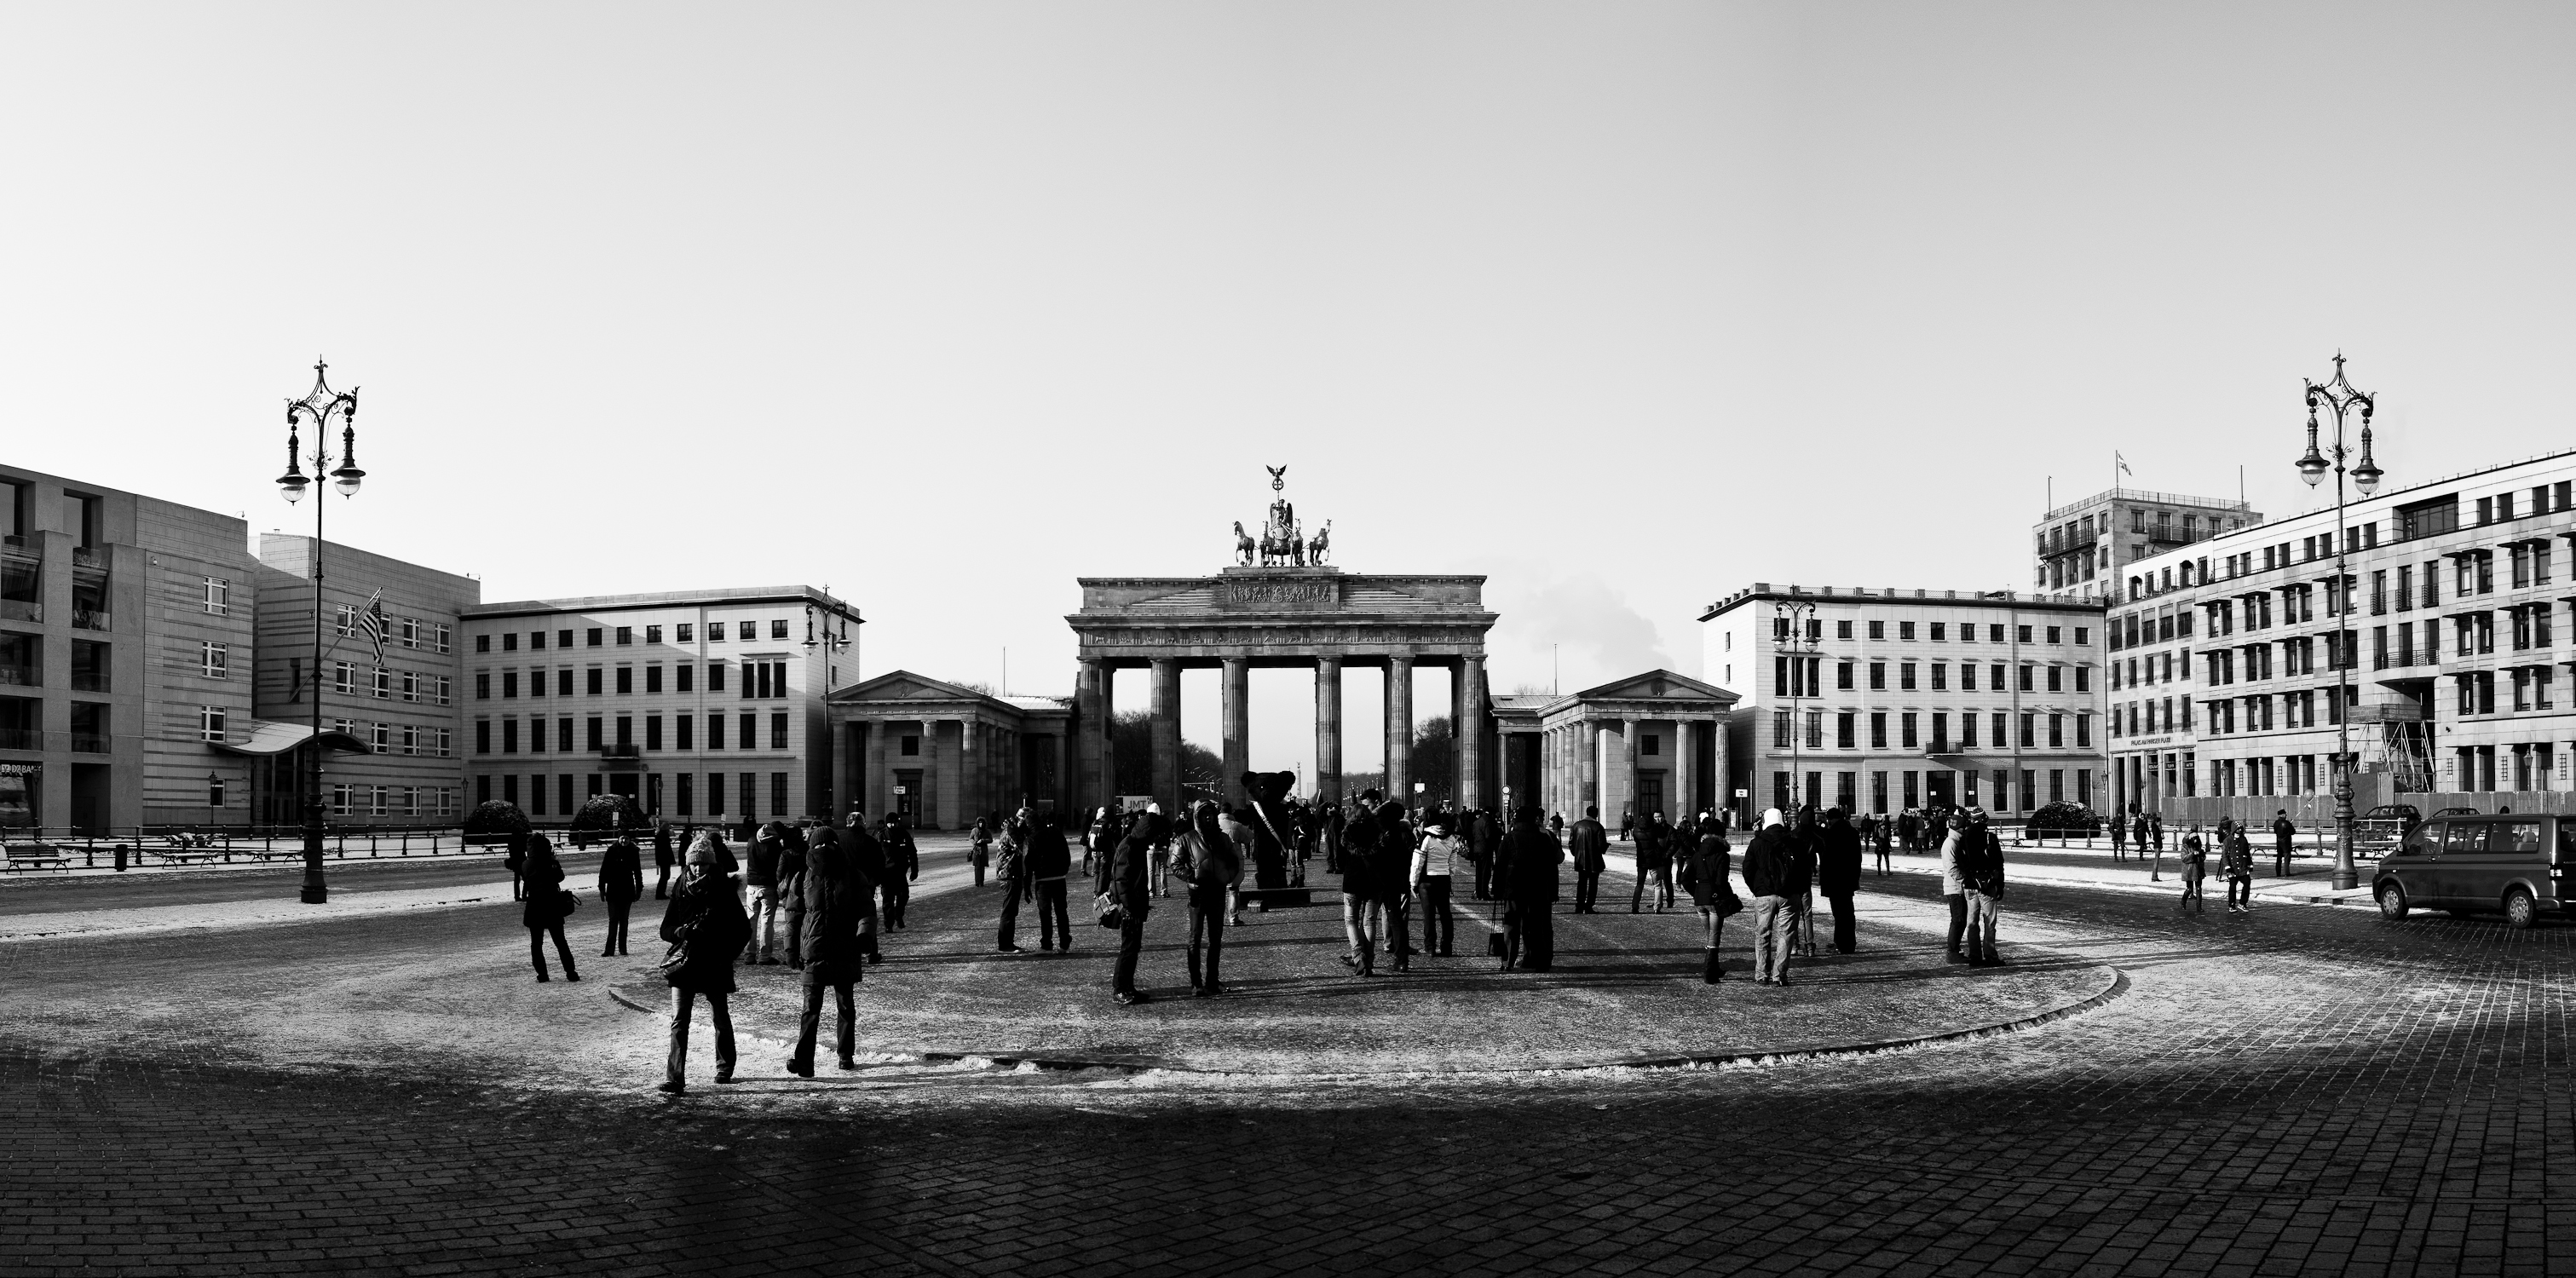 pariser platz and brandenburg gate it is said that. Black Bedroom Furniture Sets. Home Design Ideas